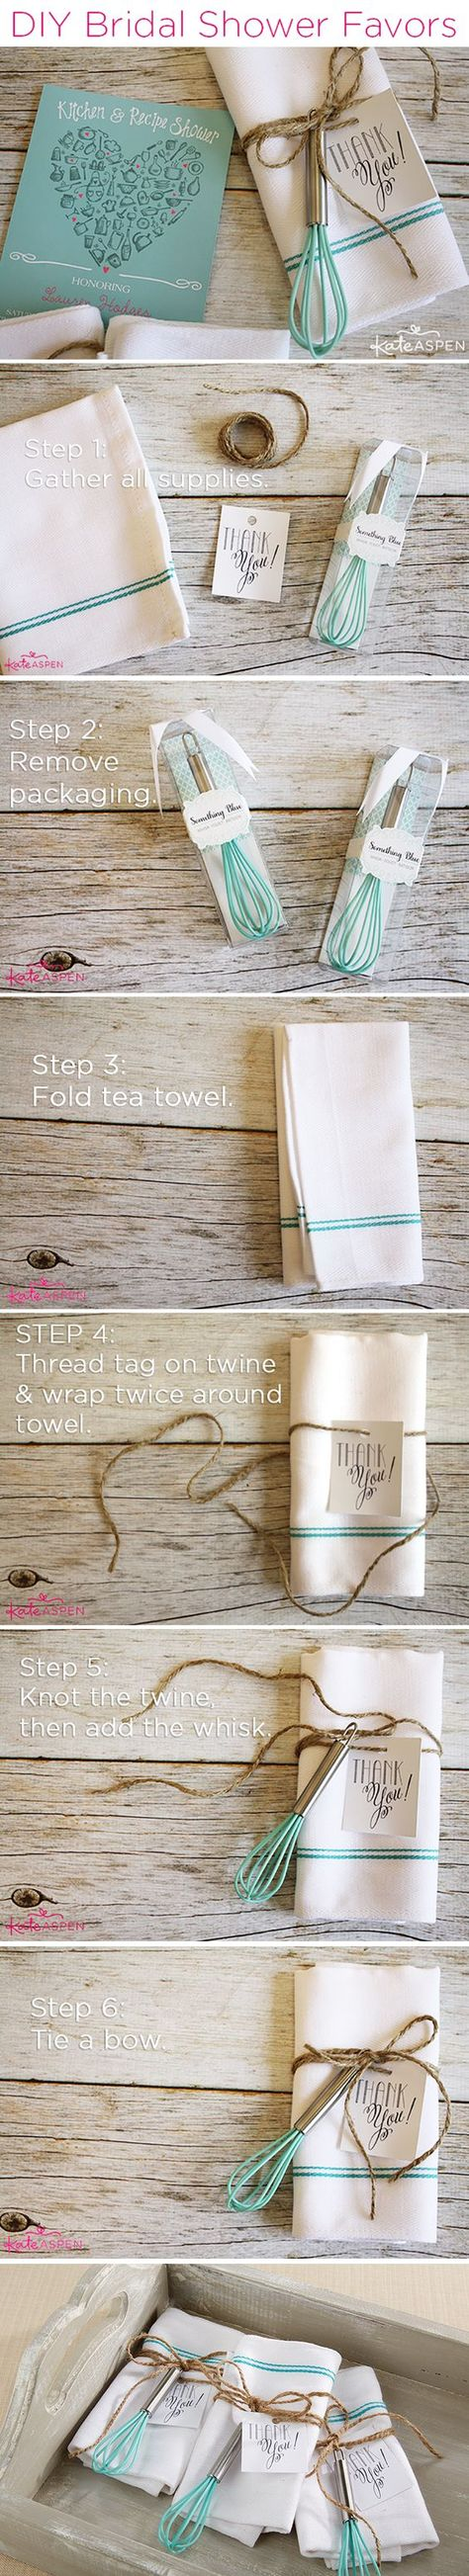 looking for homemade bridal shower favor ideas just follow these step